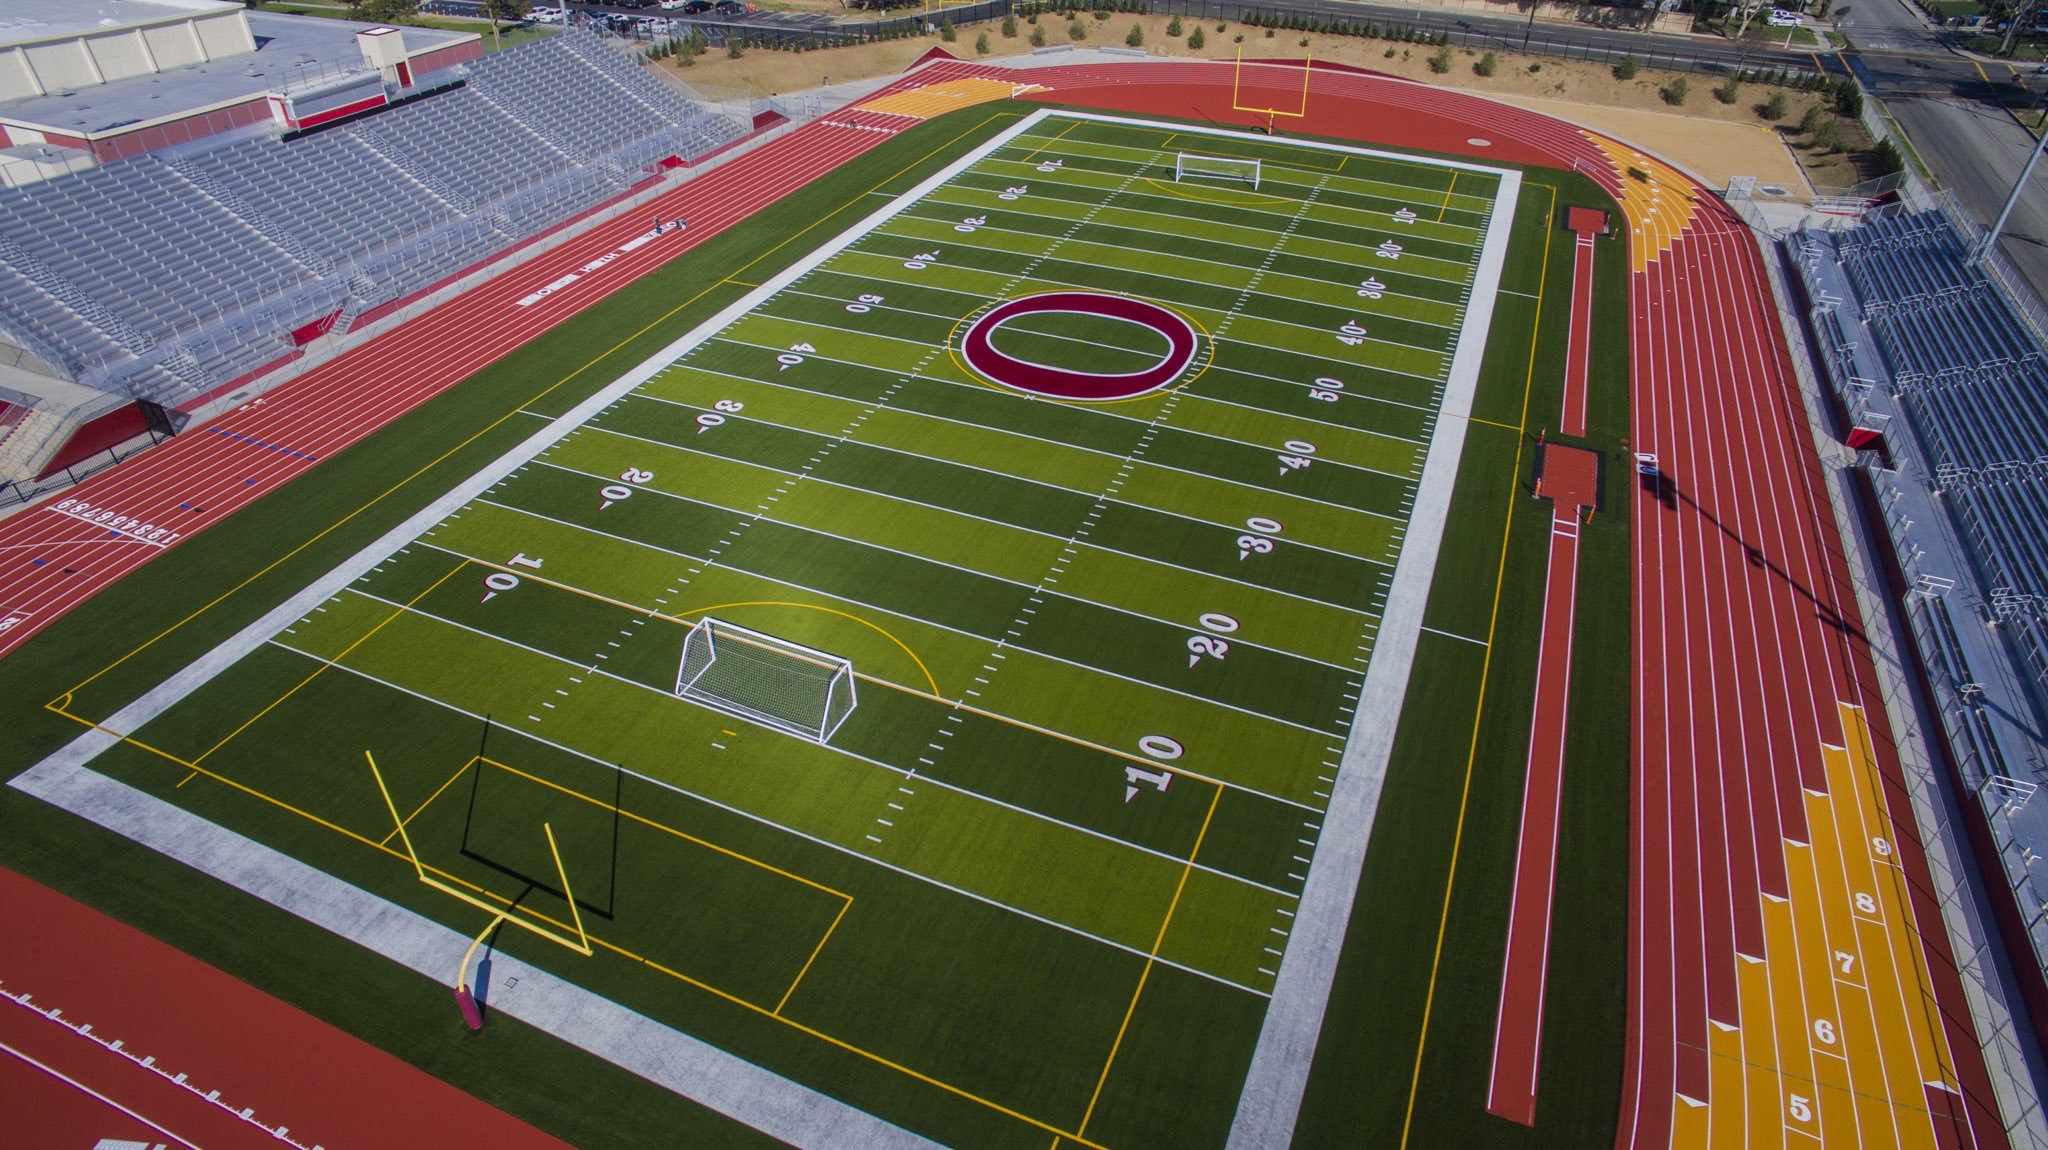 Synthetic artificial grass football field